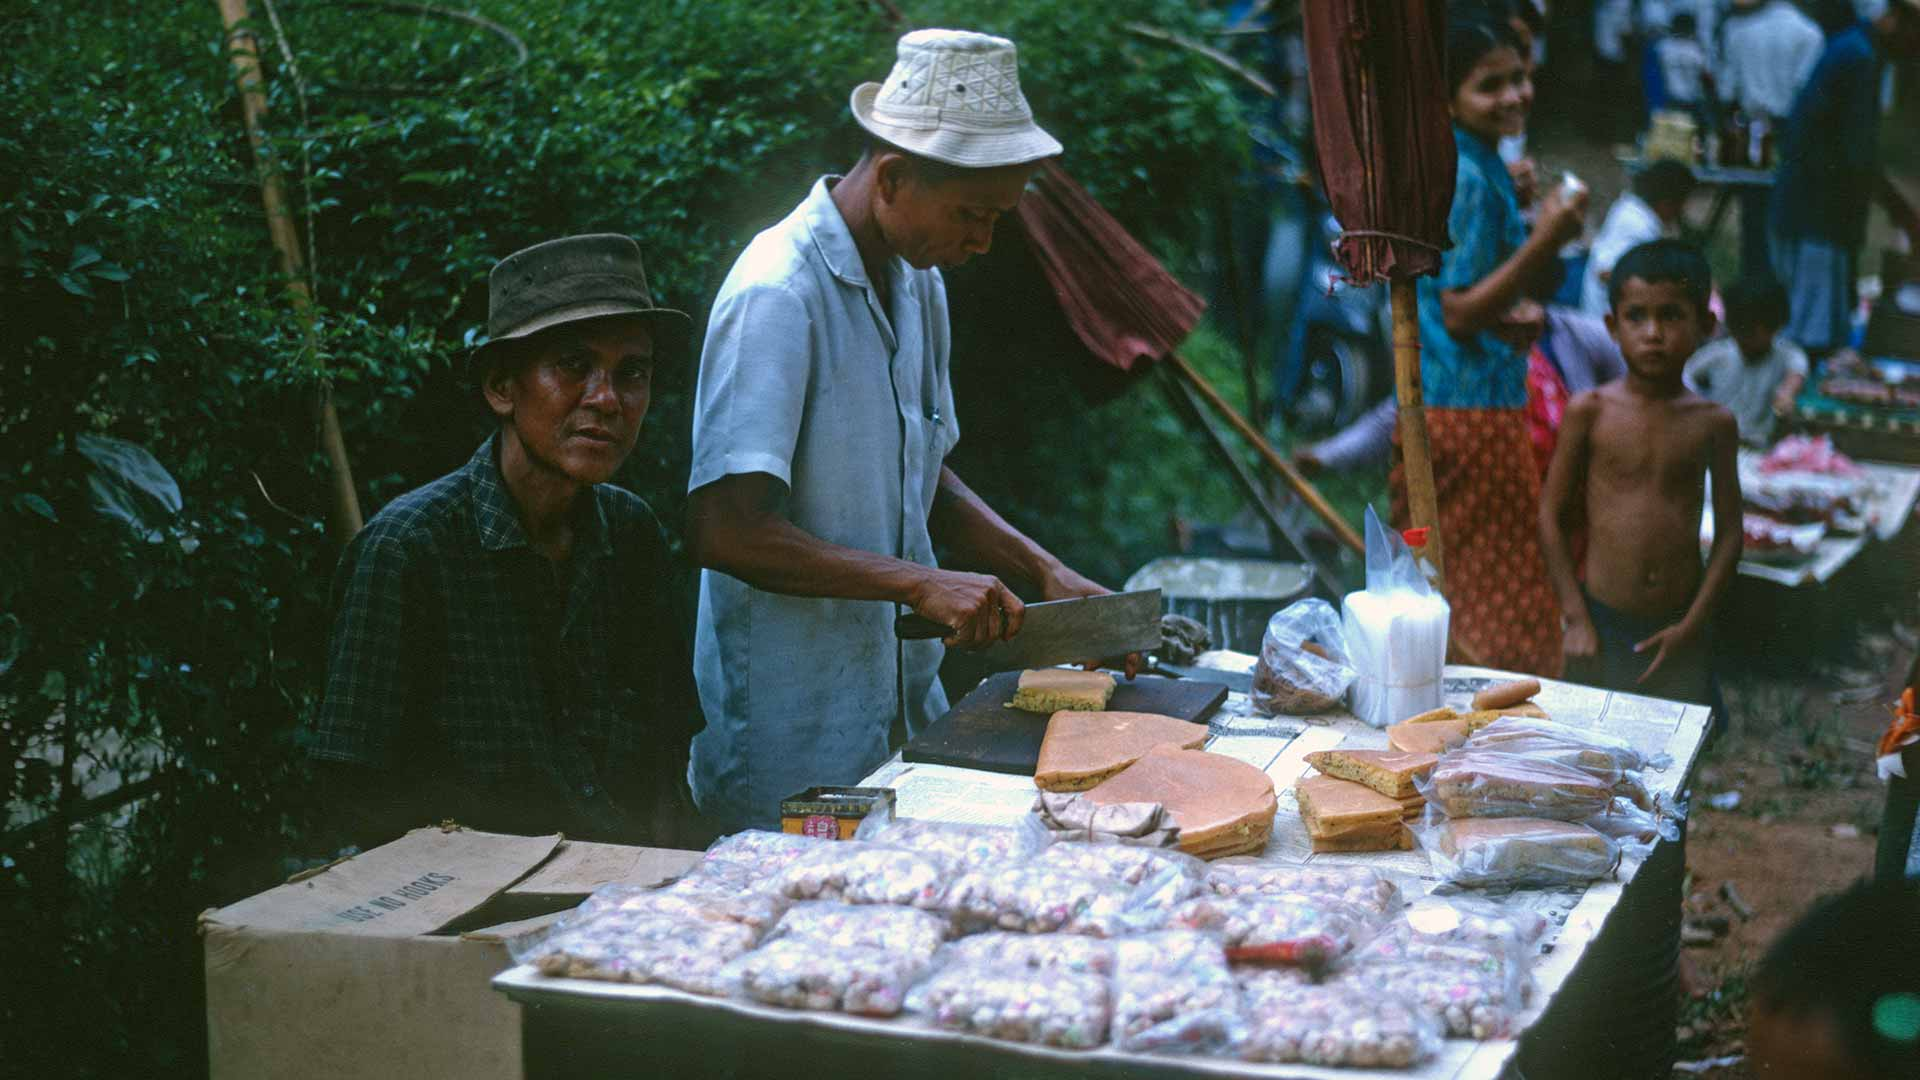 A man prepares food at a table full of food for sale.